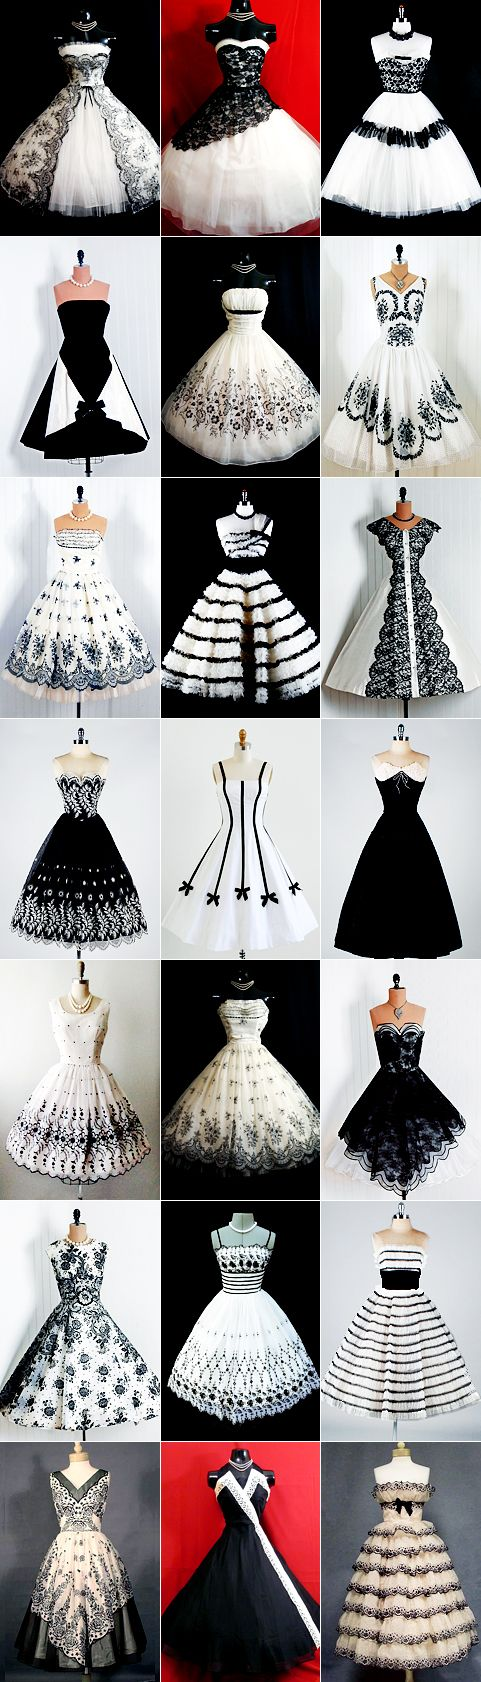 1950s Prom and Party Dresses. LOVE: